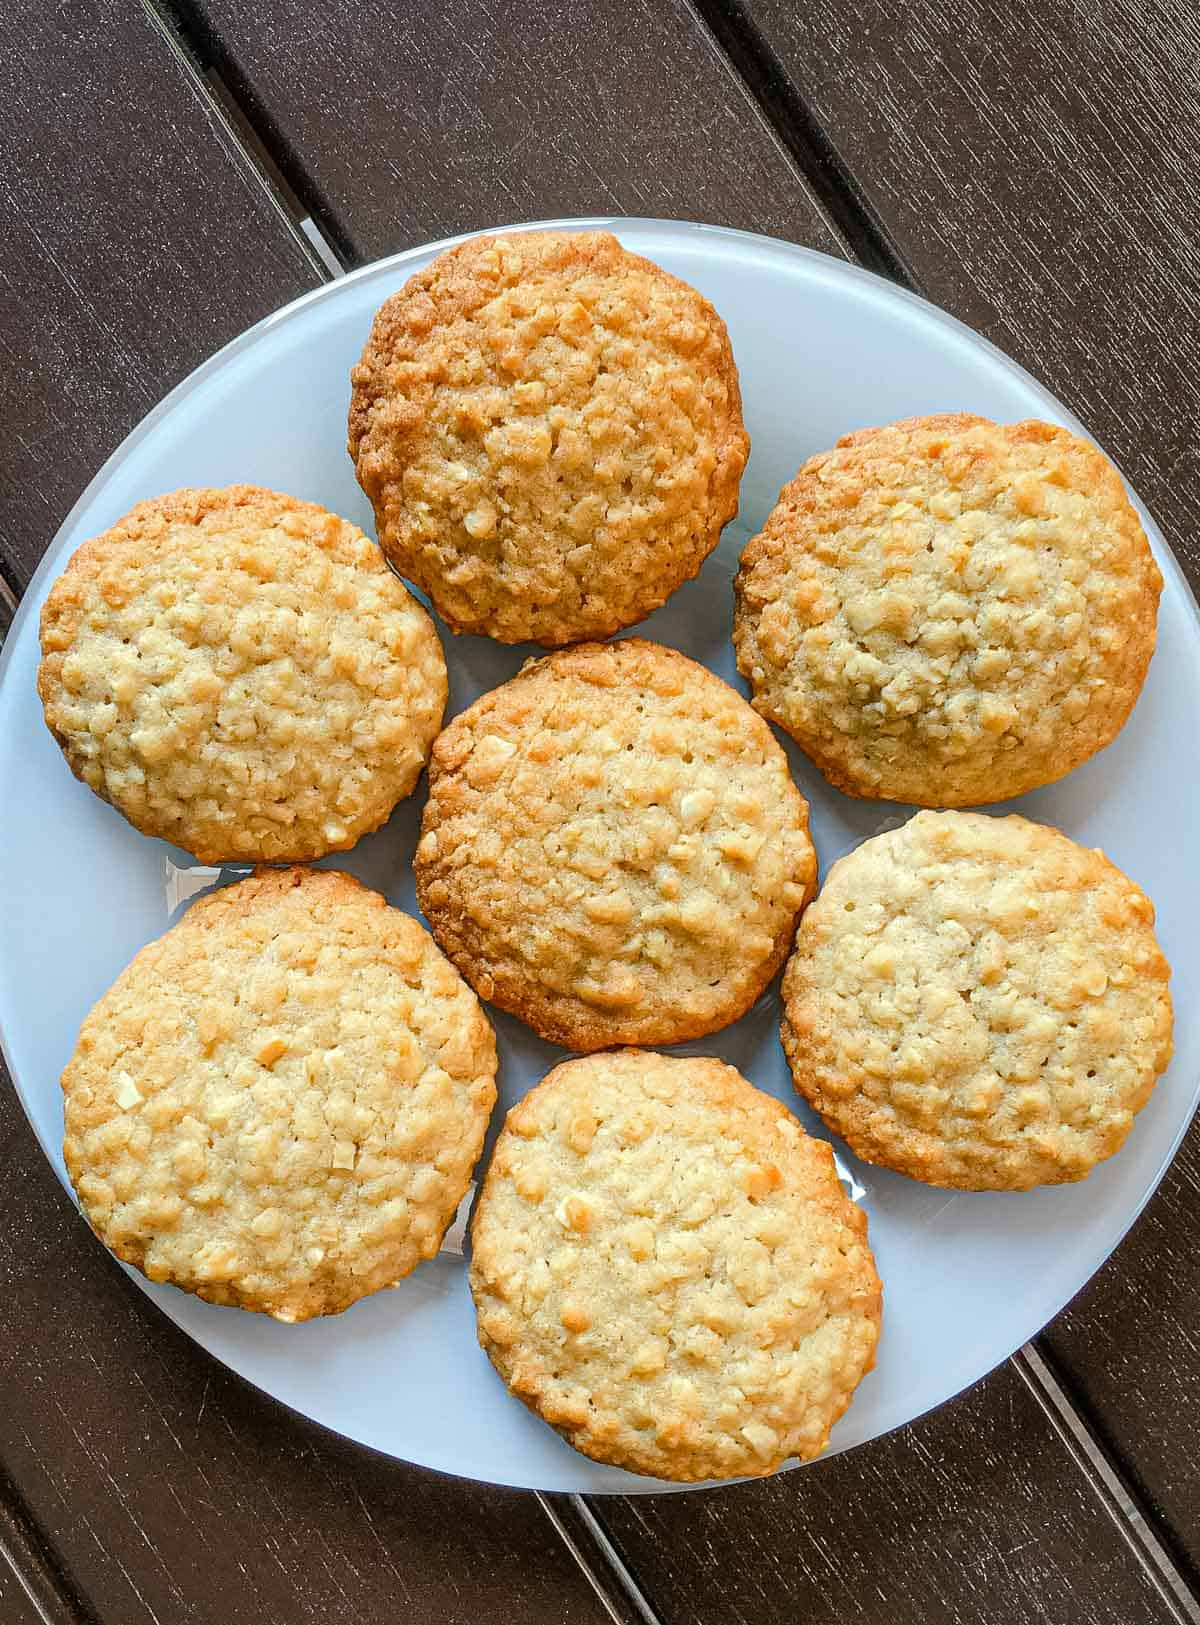 Almond oatmeal cookies arranged on a white plate